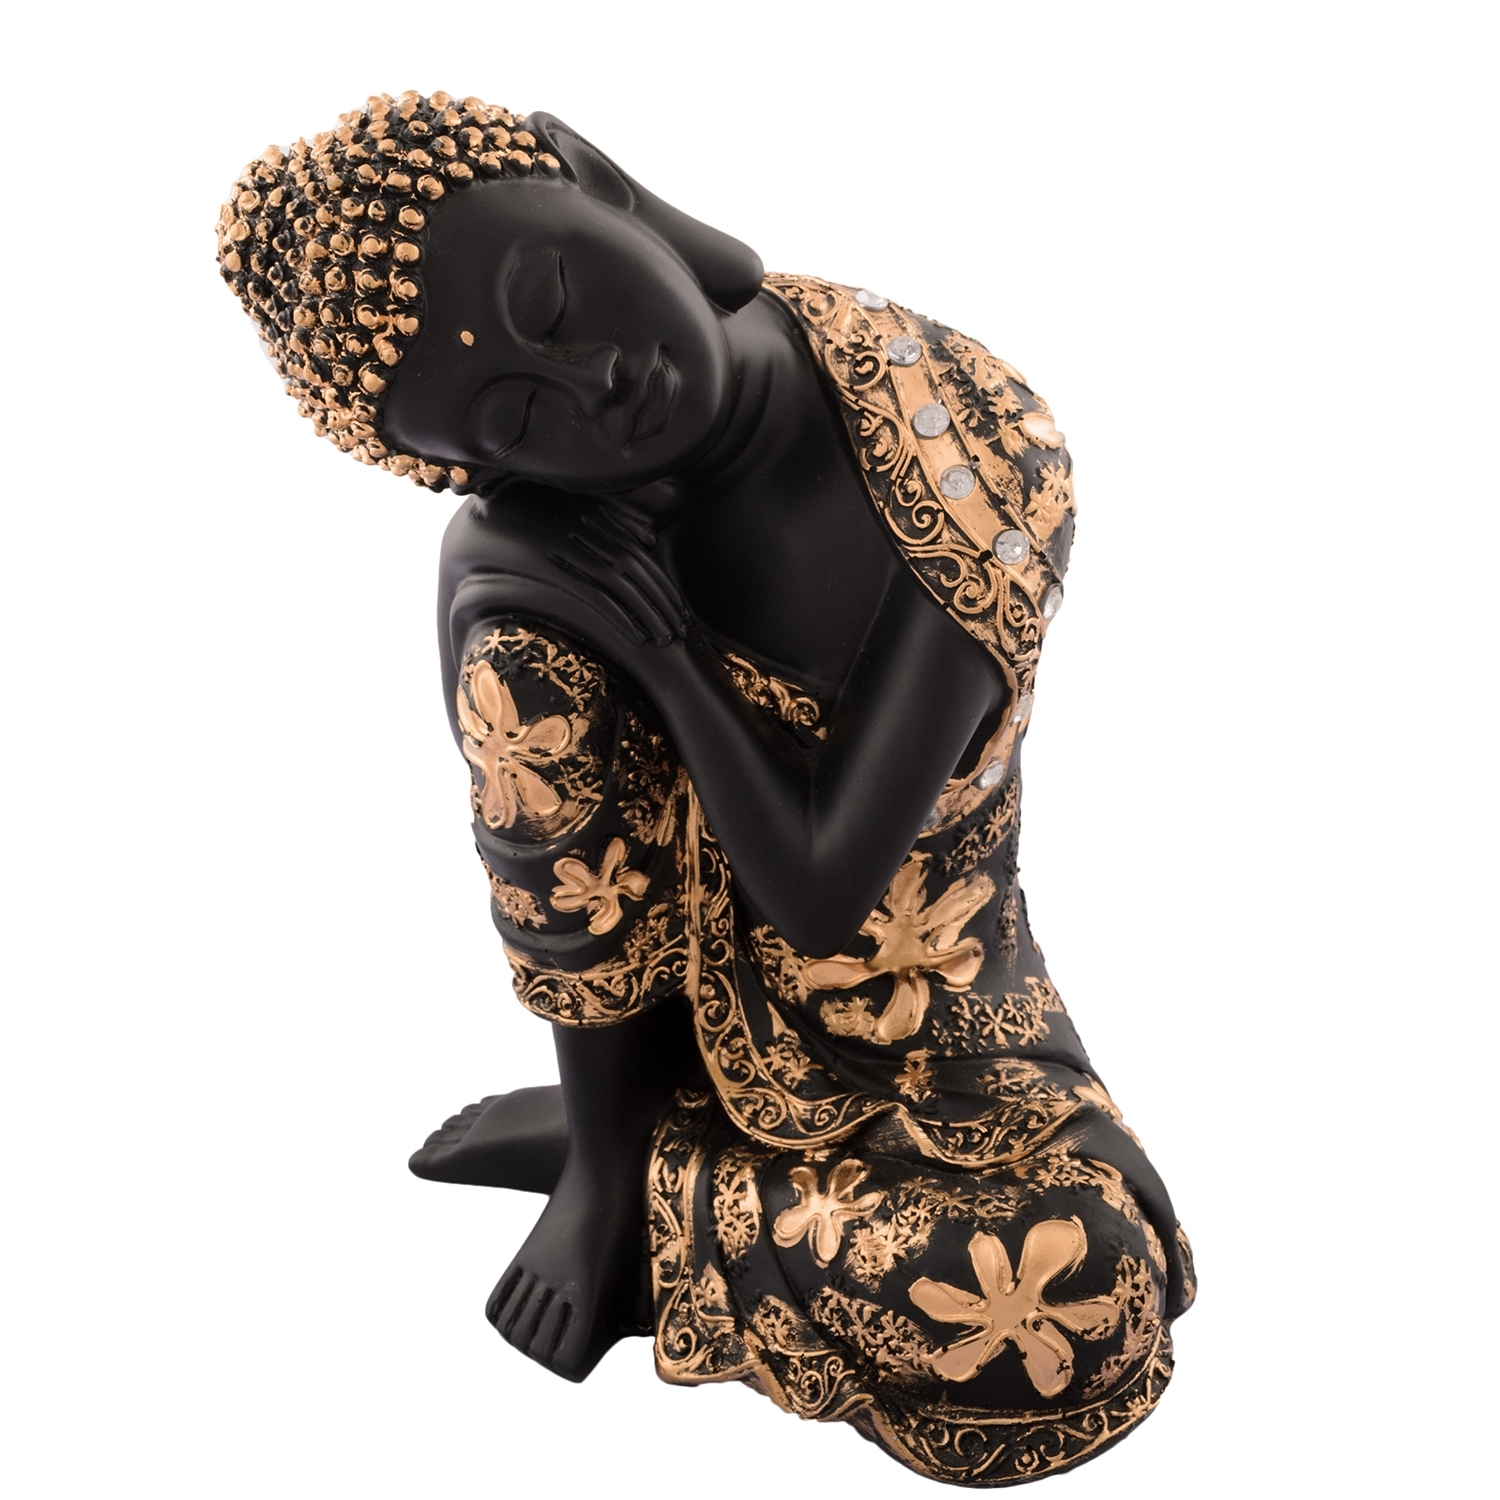 Pleasing Buddha on Knee Polyresin Showpiece Indian Home Decor